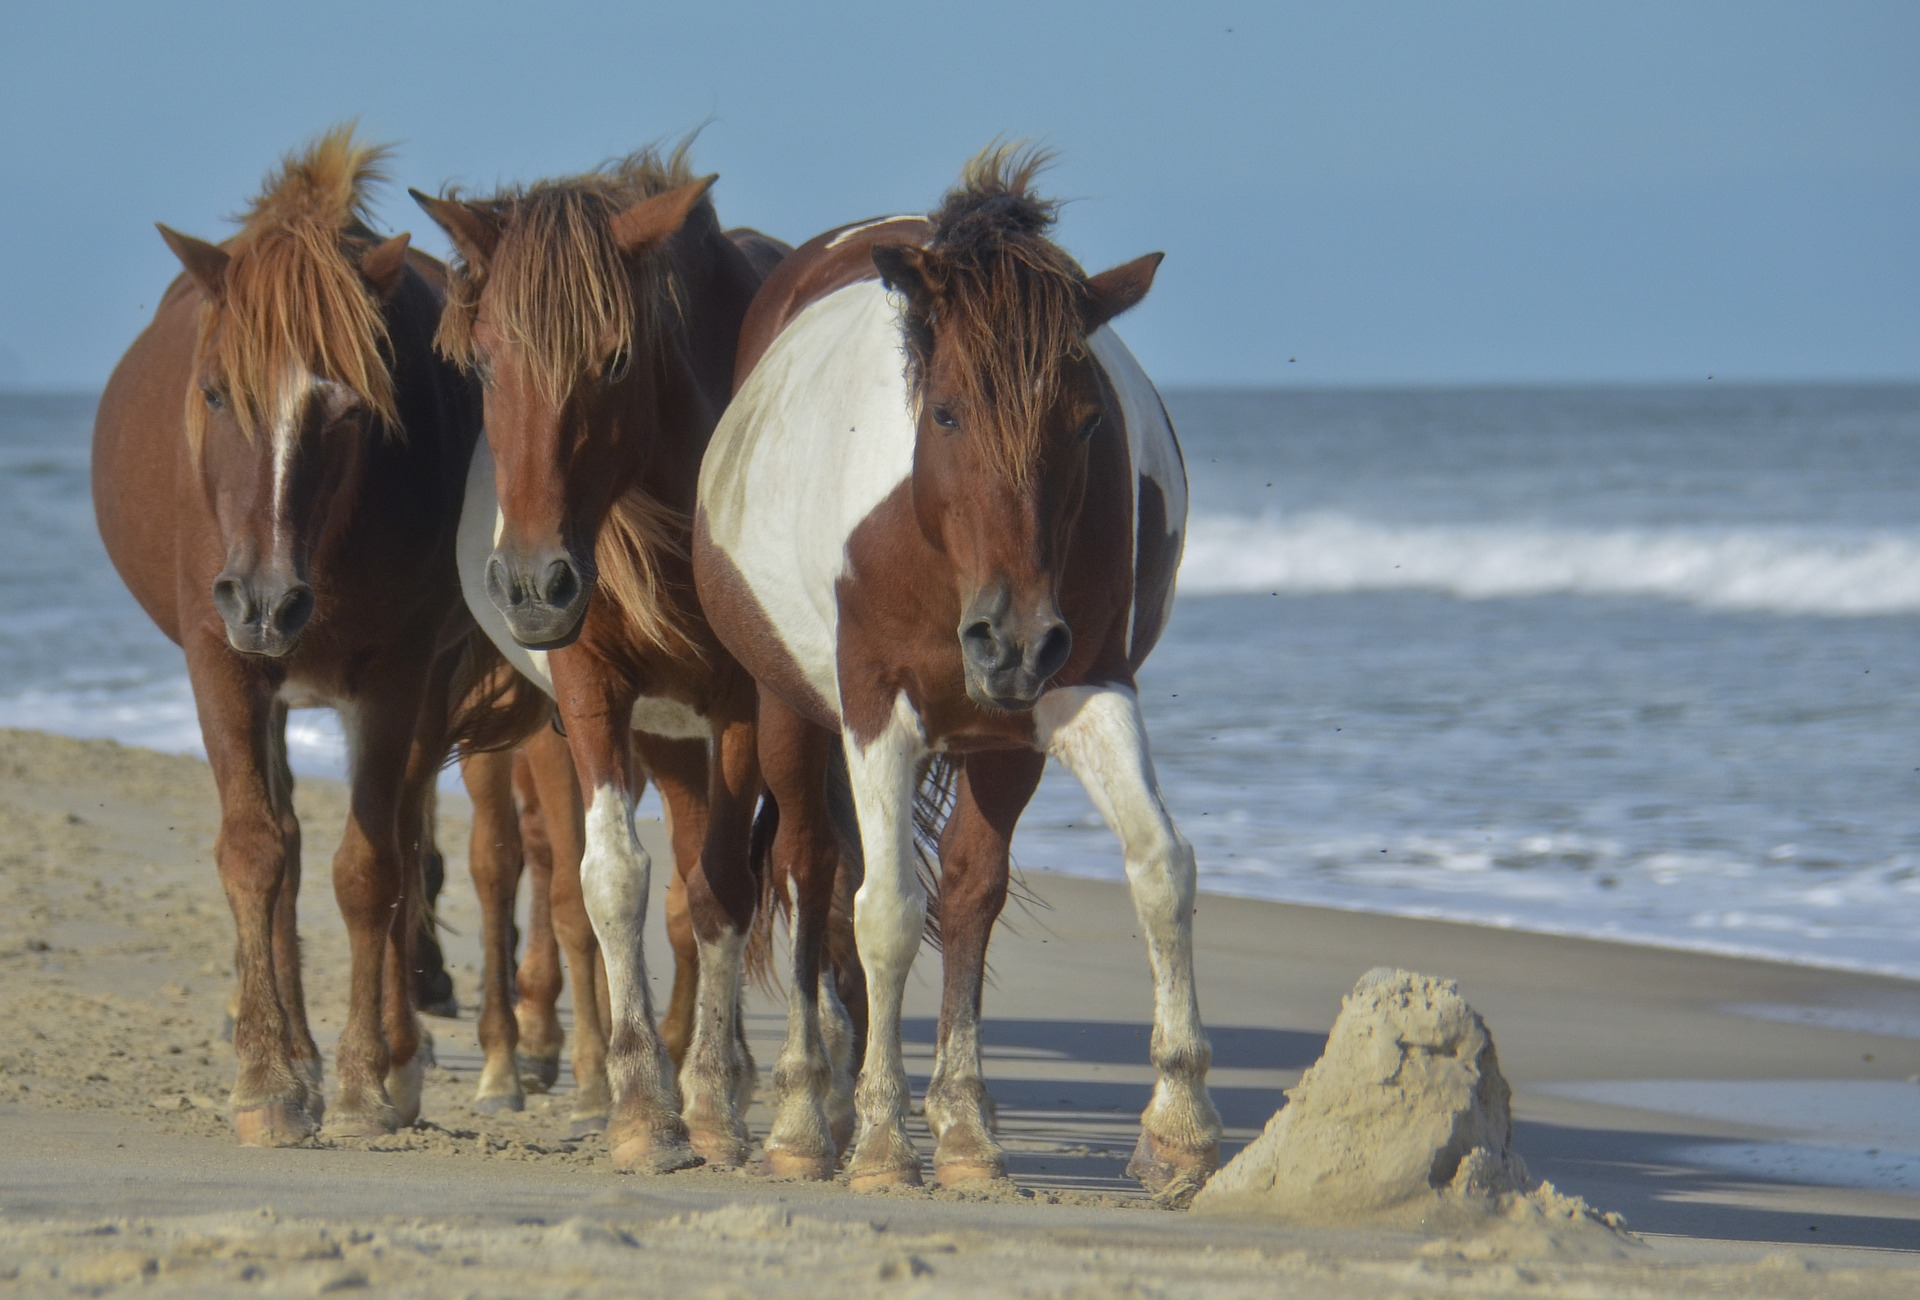 Fun Fact: Which Maryland County is One of the Few Places in the U.S. Where You Can View Wild Horses?